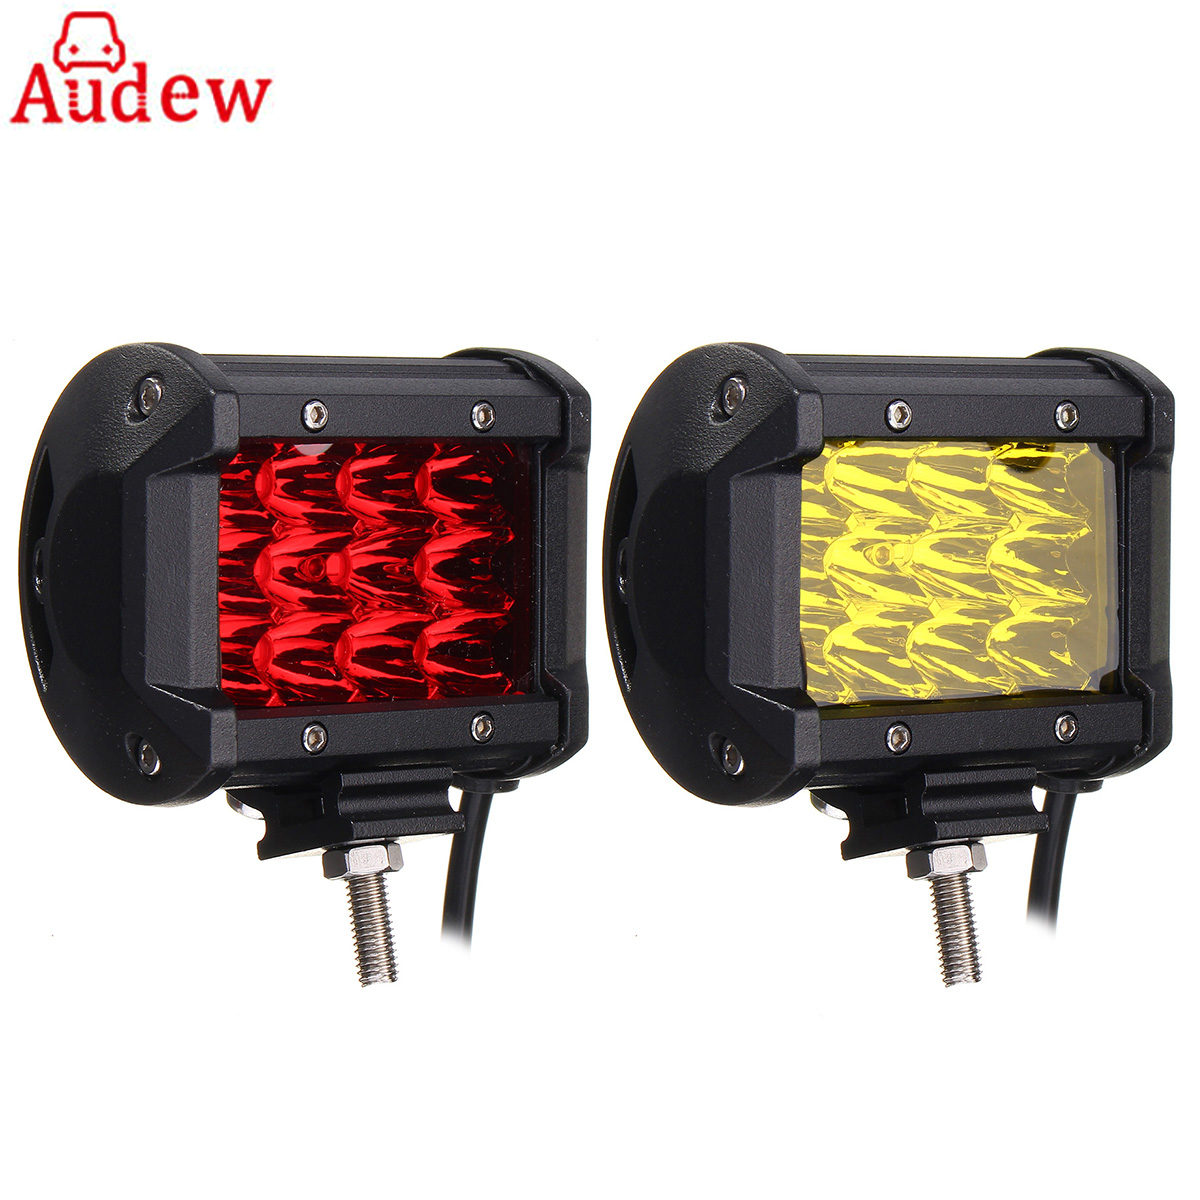 2Pcs Car LED Day Light yellow Red work Lamp 4Inch Spot Flood Lamp Led Driving Lights 12v 24v for Truck  ATV SUV 10w led work light 2 inch 12v 24v car auto suv atv 4wd awd 4x4 off road led driving lamp motorcycle truck headlight